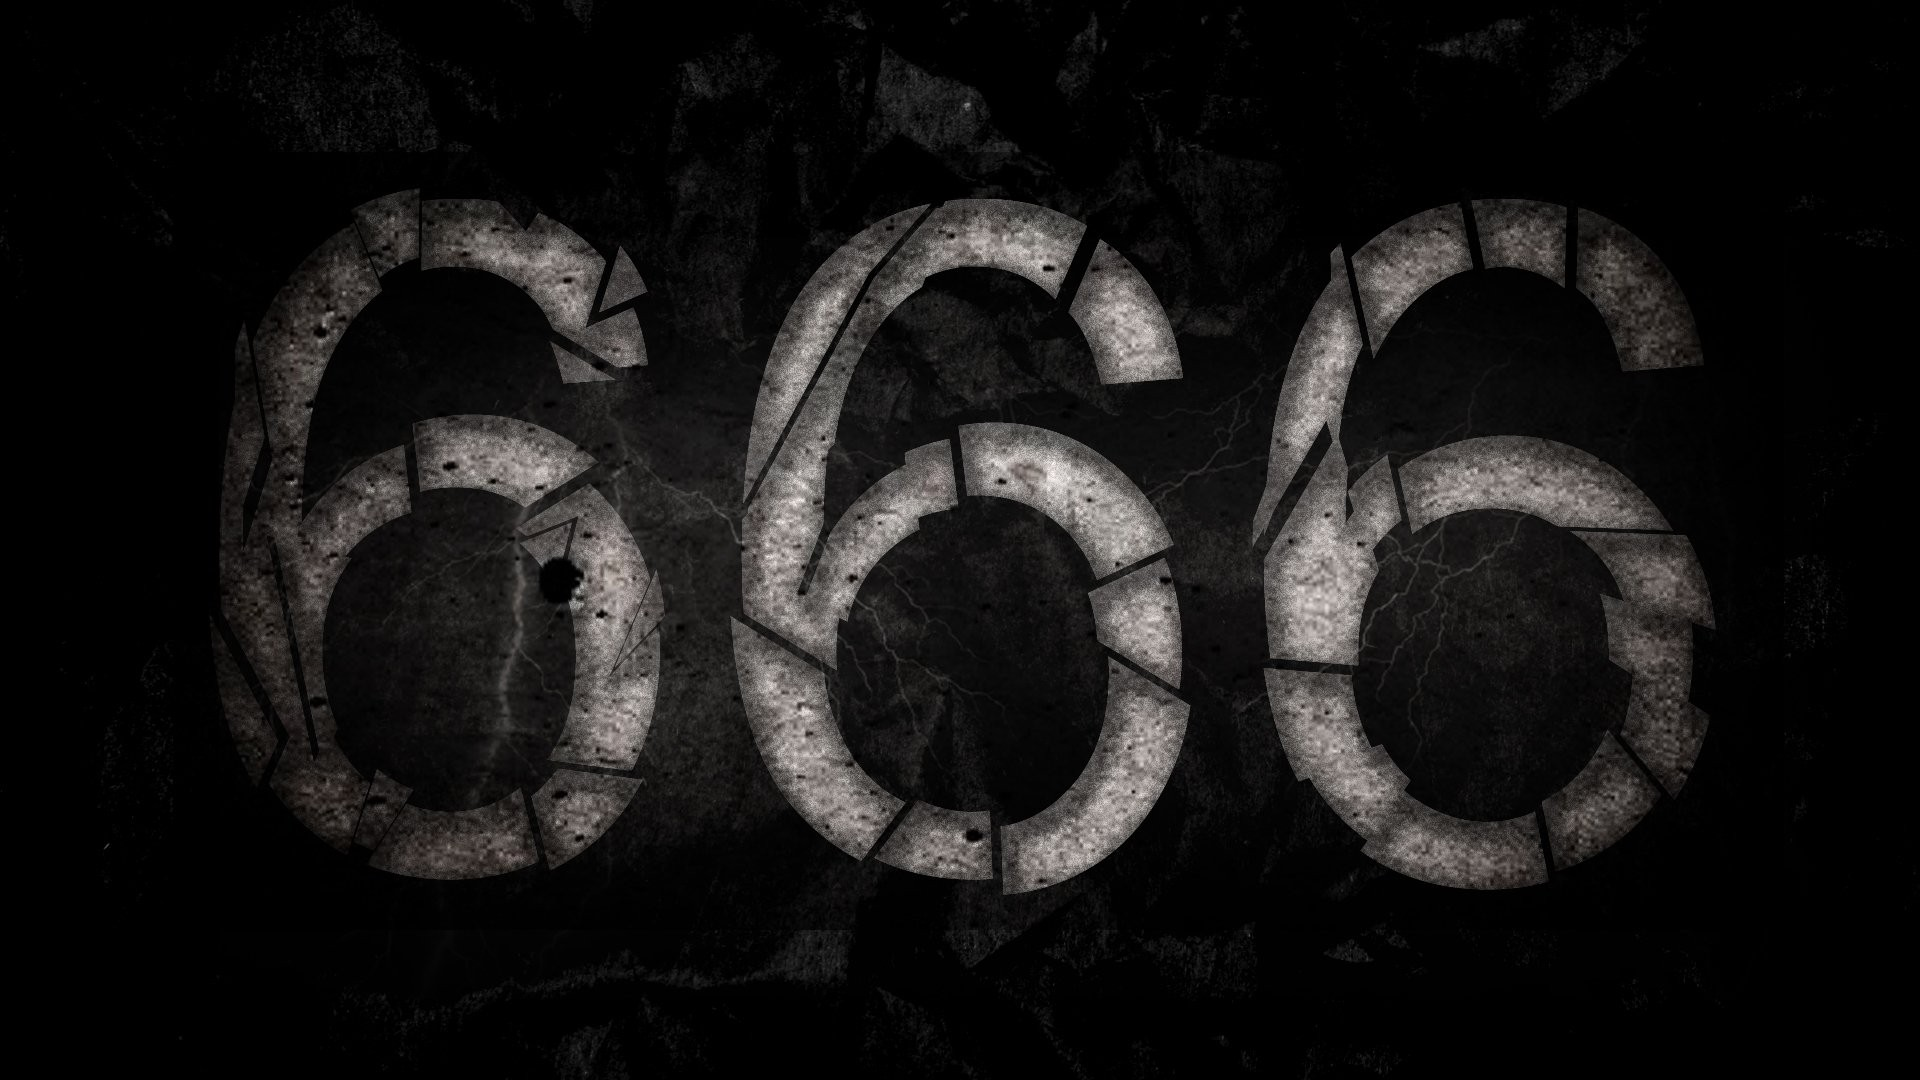 satanic wallpaper download free amazing hd wallpapers for